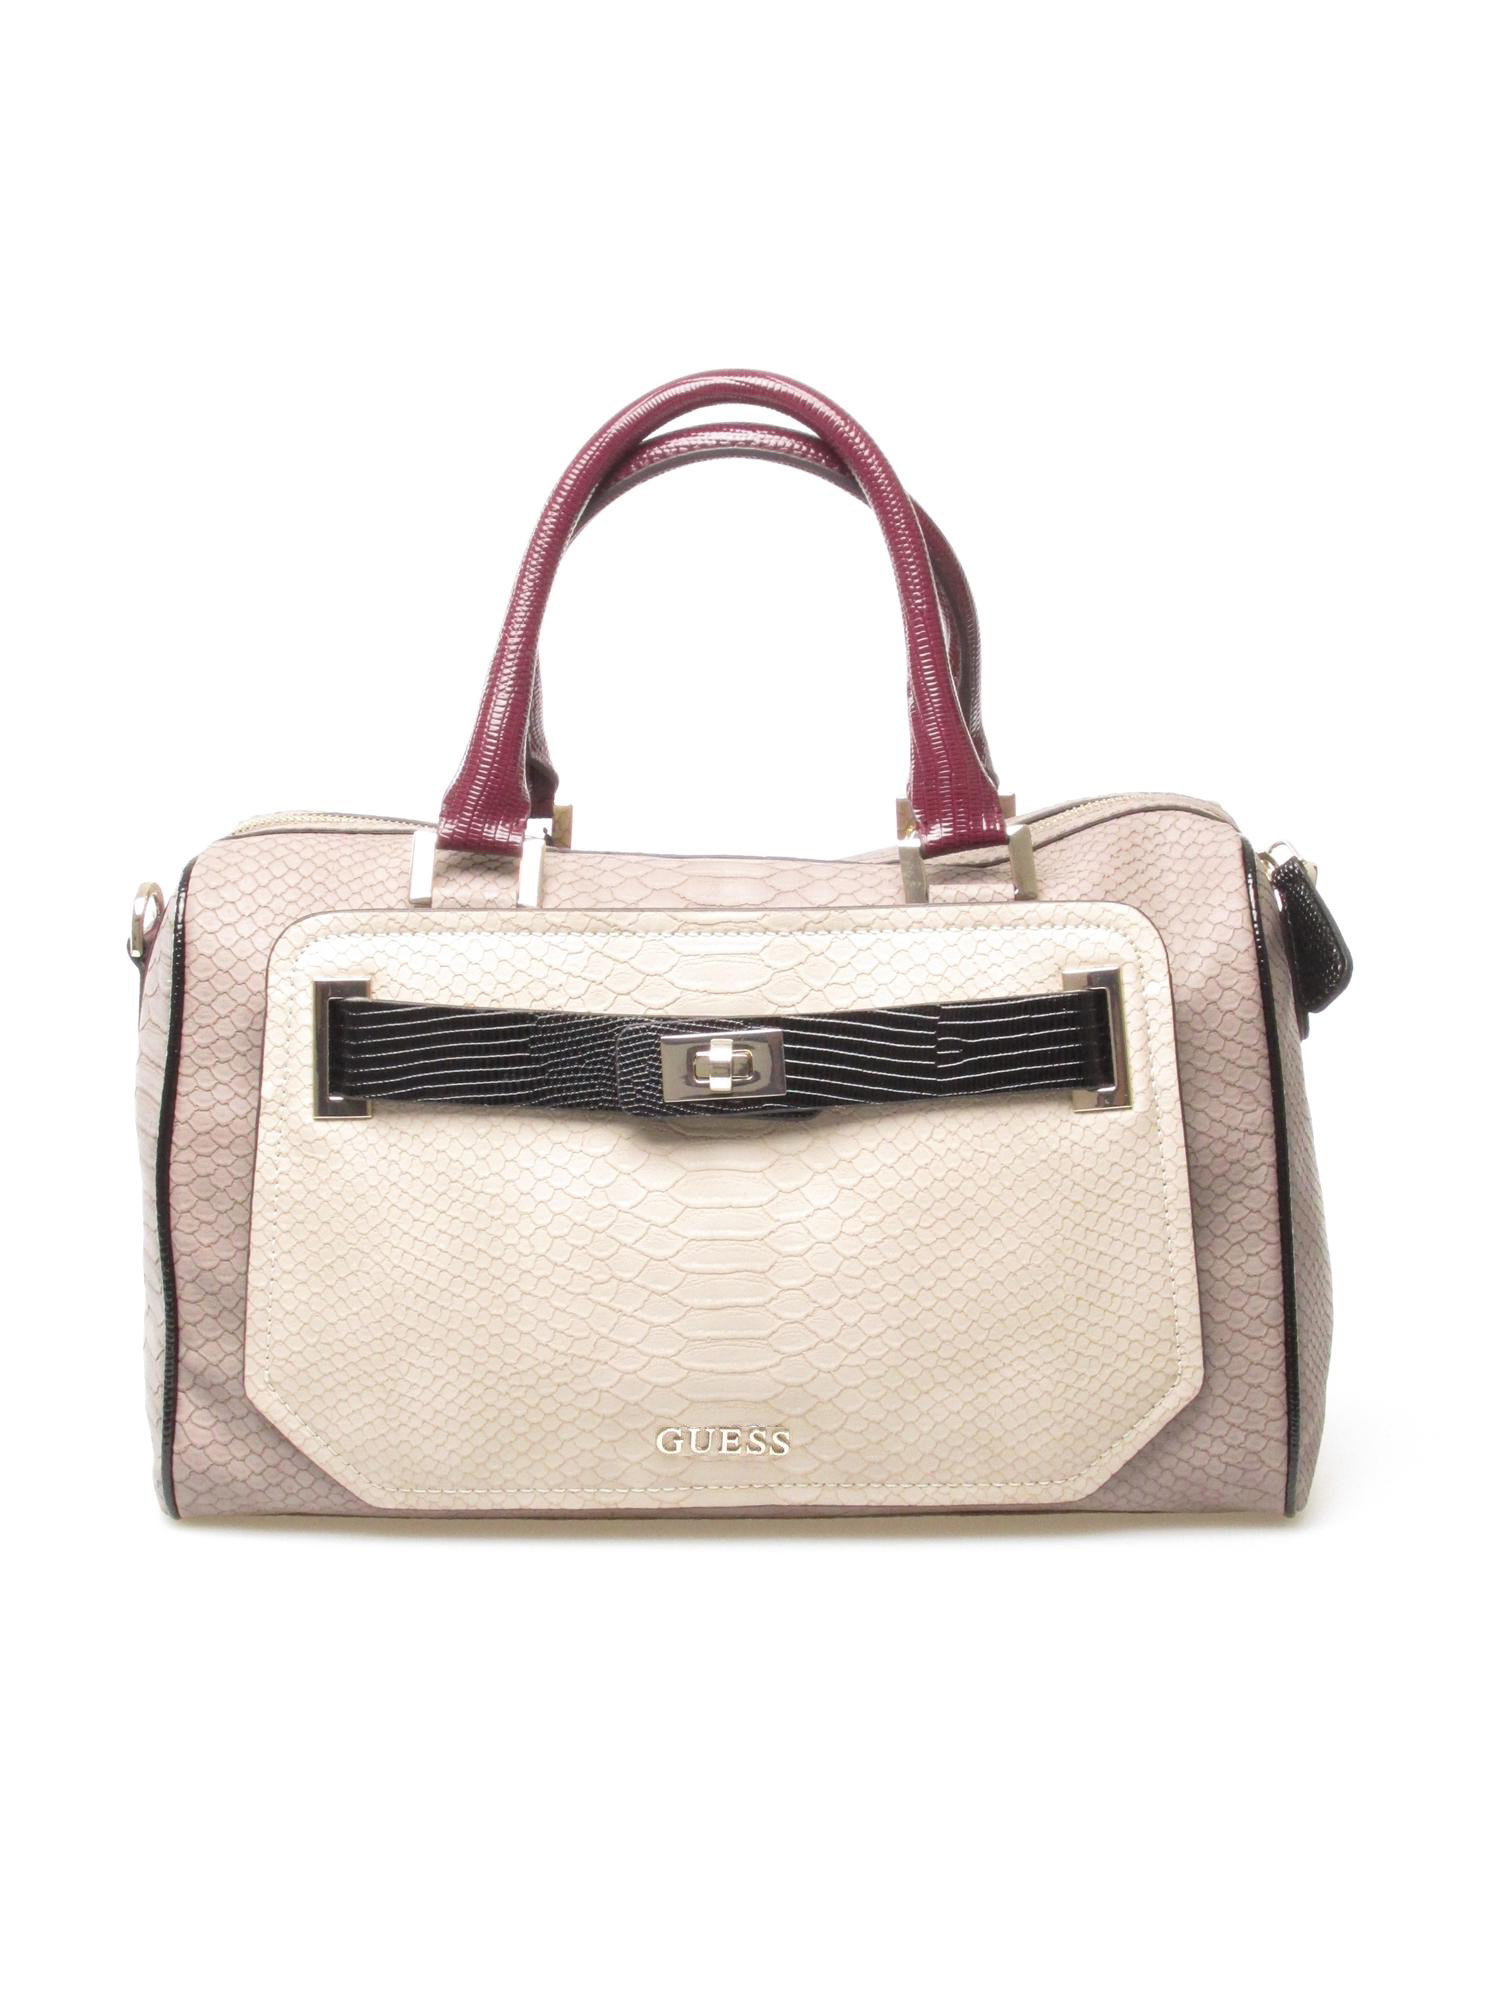 guess satchel womens satchel satchel bag